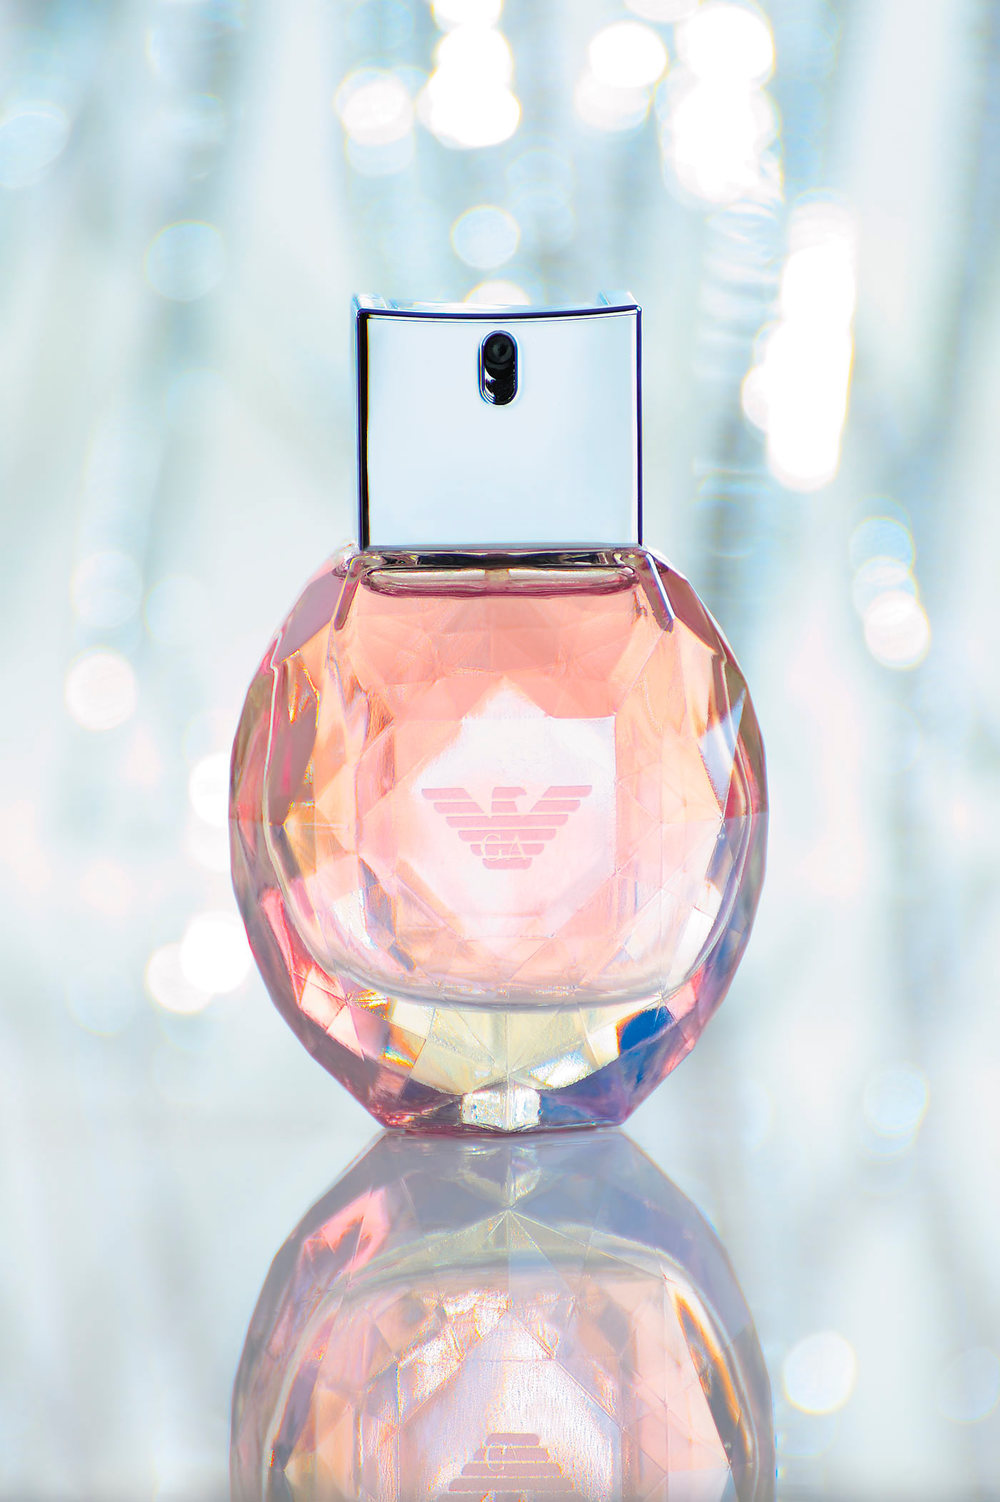 04) studio-product-perfume-phil-rowley-photography-02.jpg